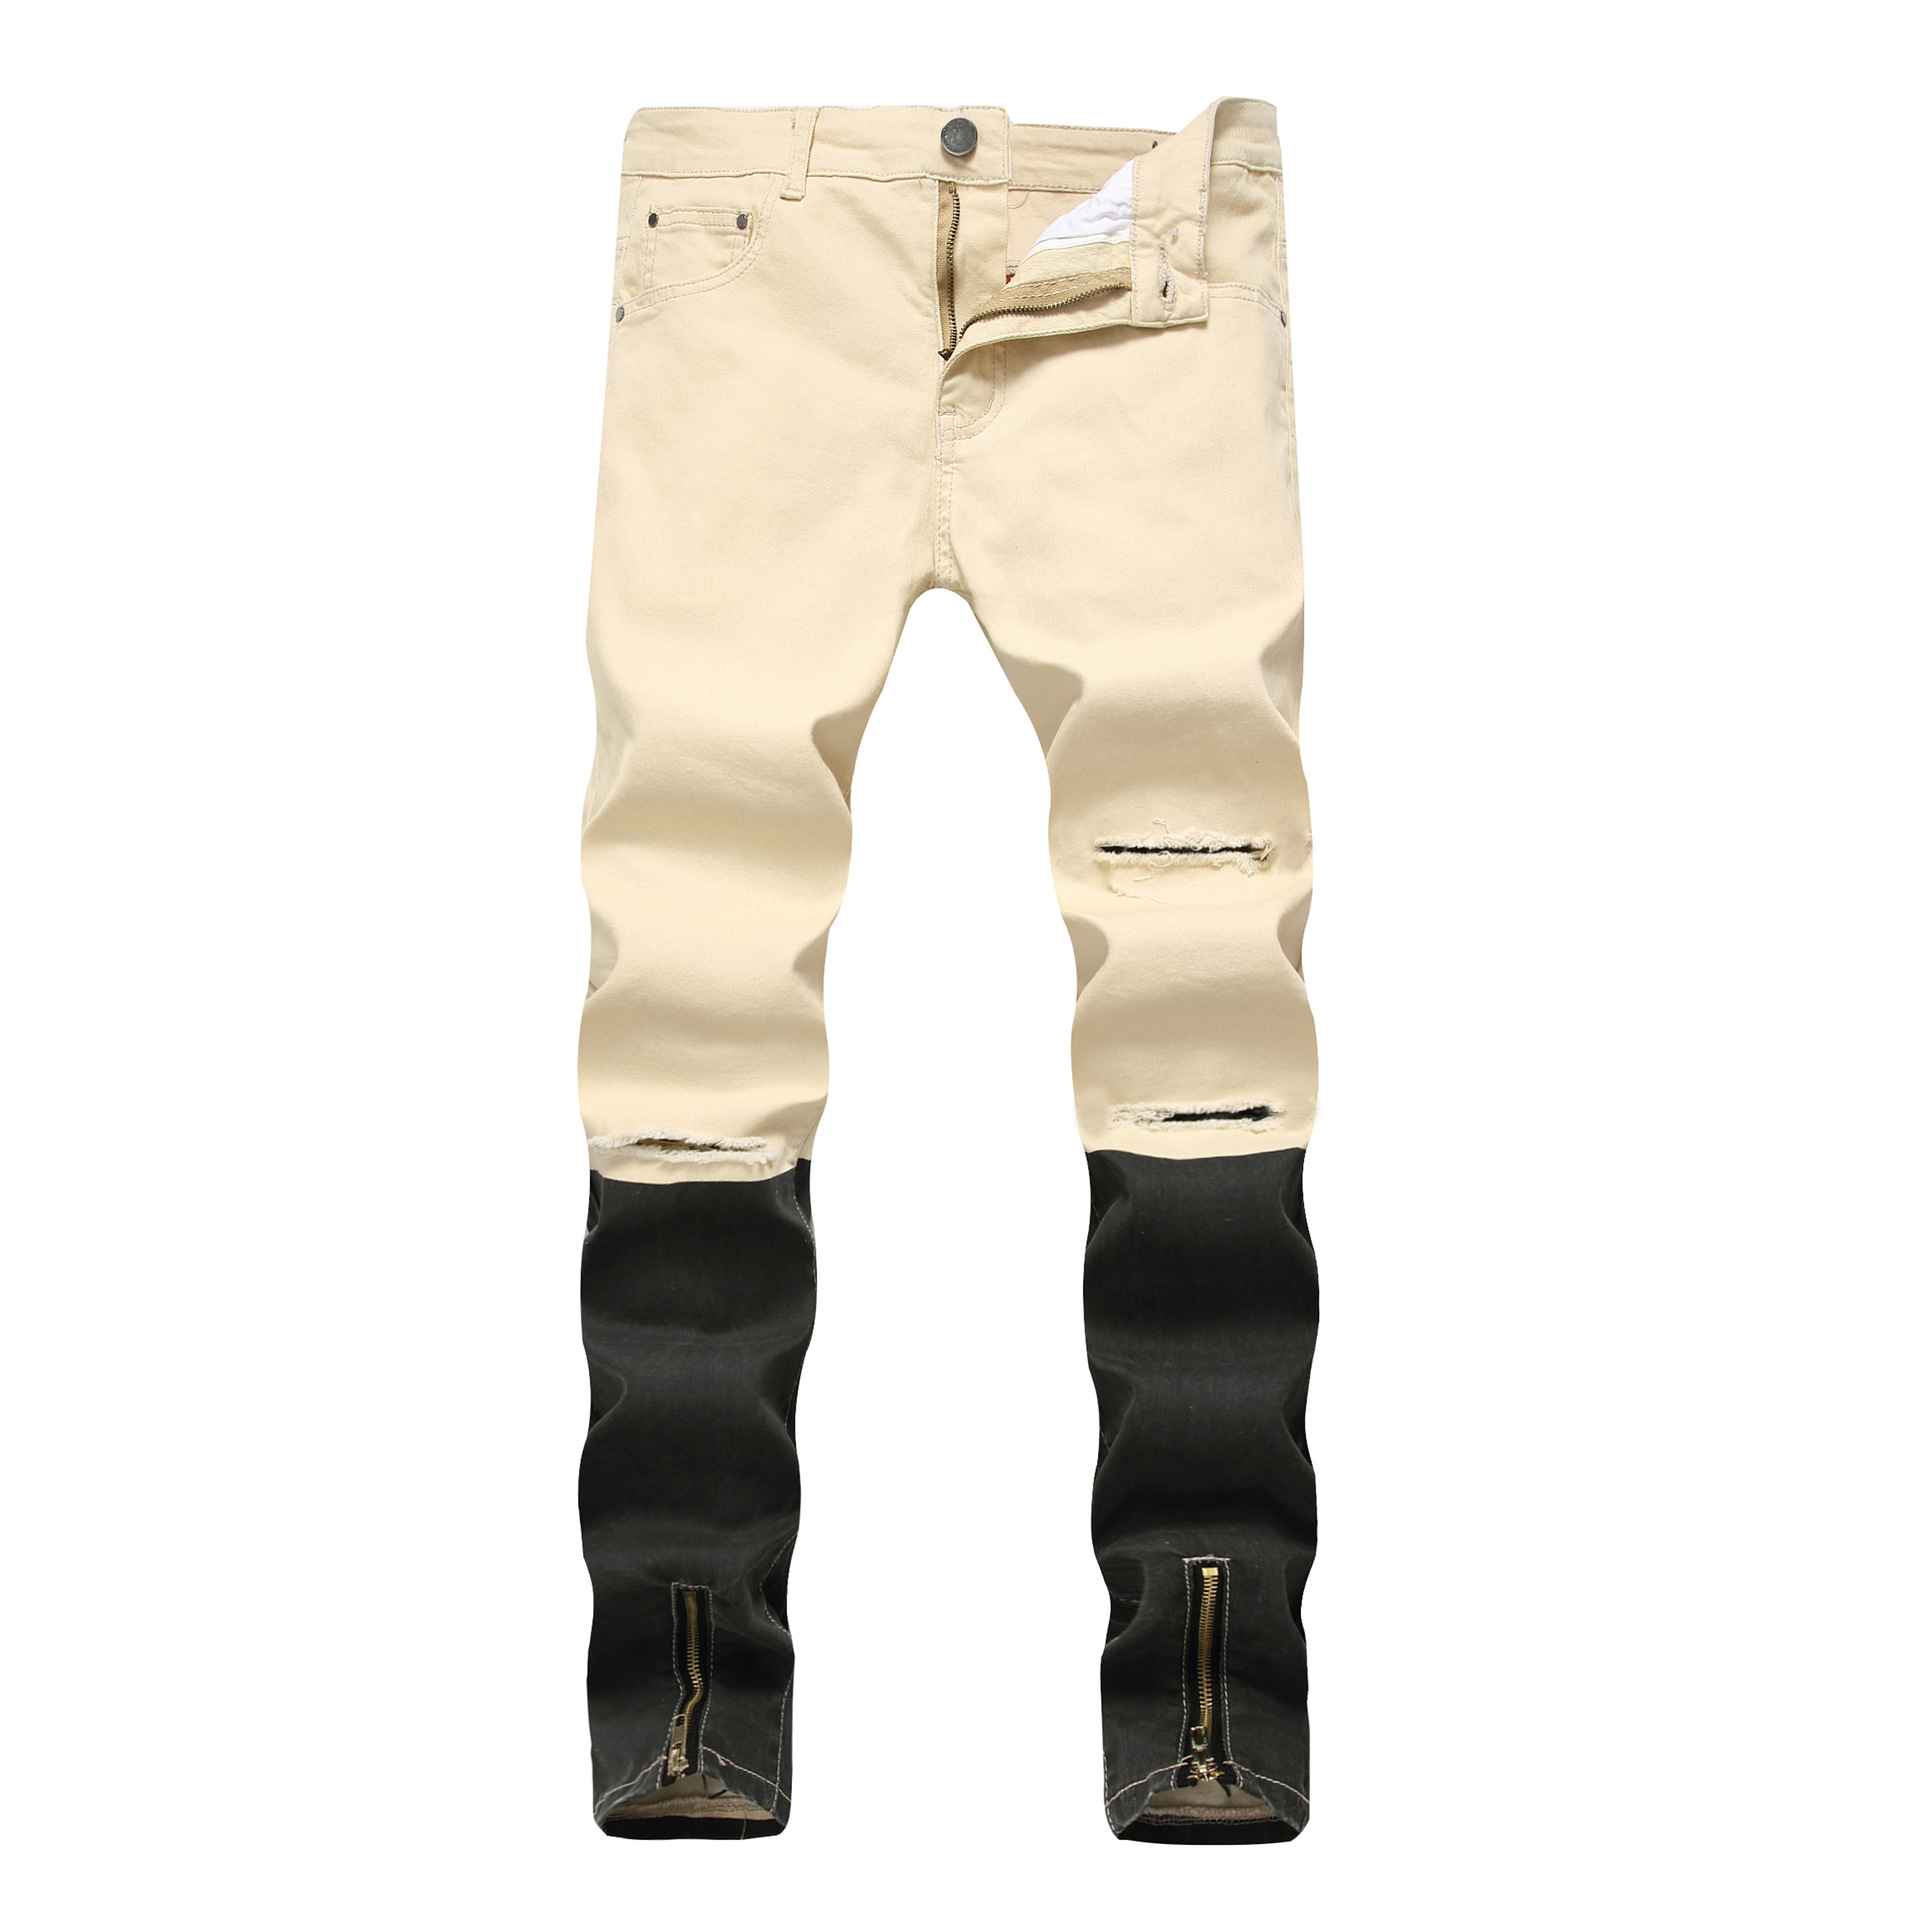 New 2018 Mens wear, khaki trousers, zippers, jeans, casual pants, elastic, tight holes, explosive pants, mens trousers.